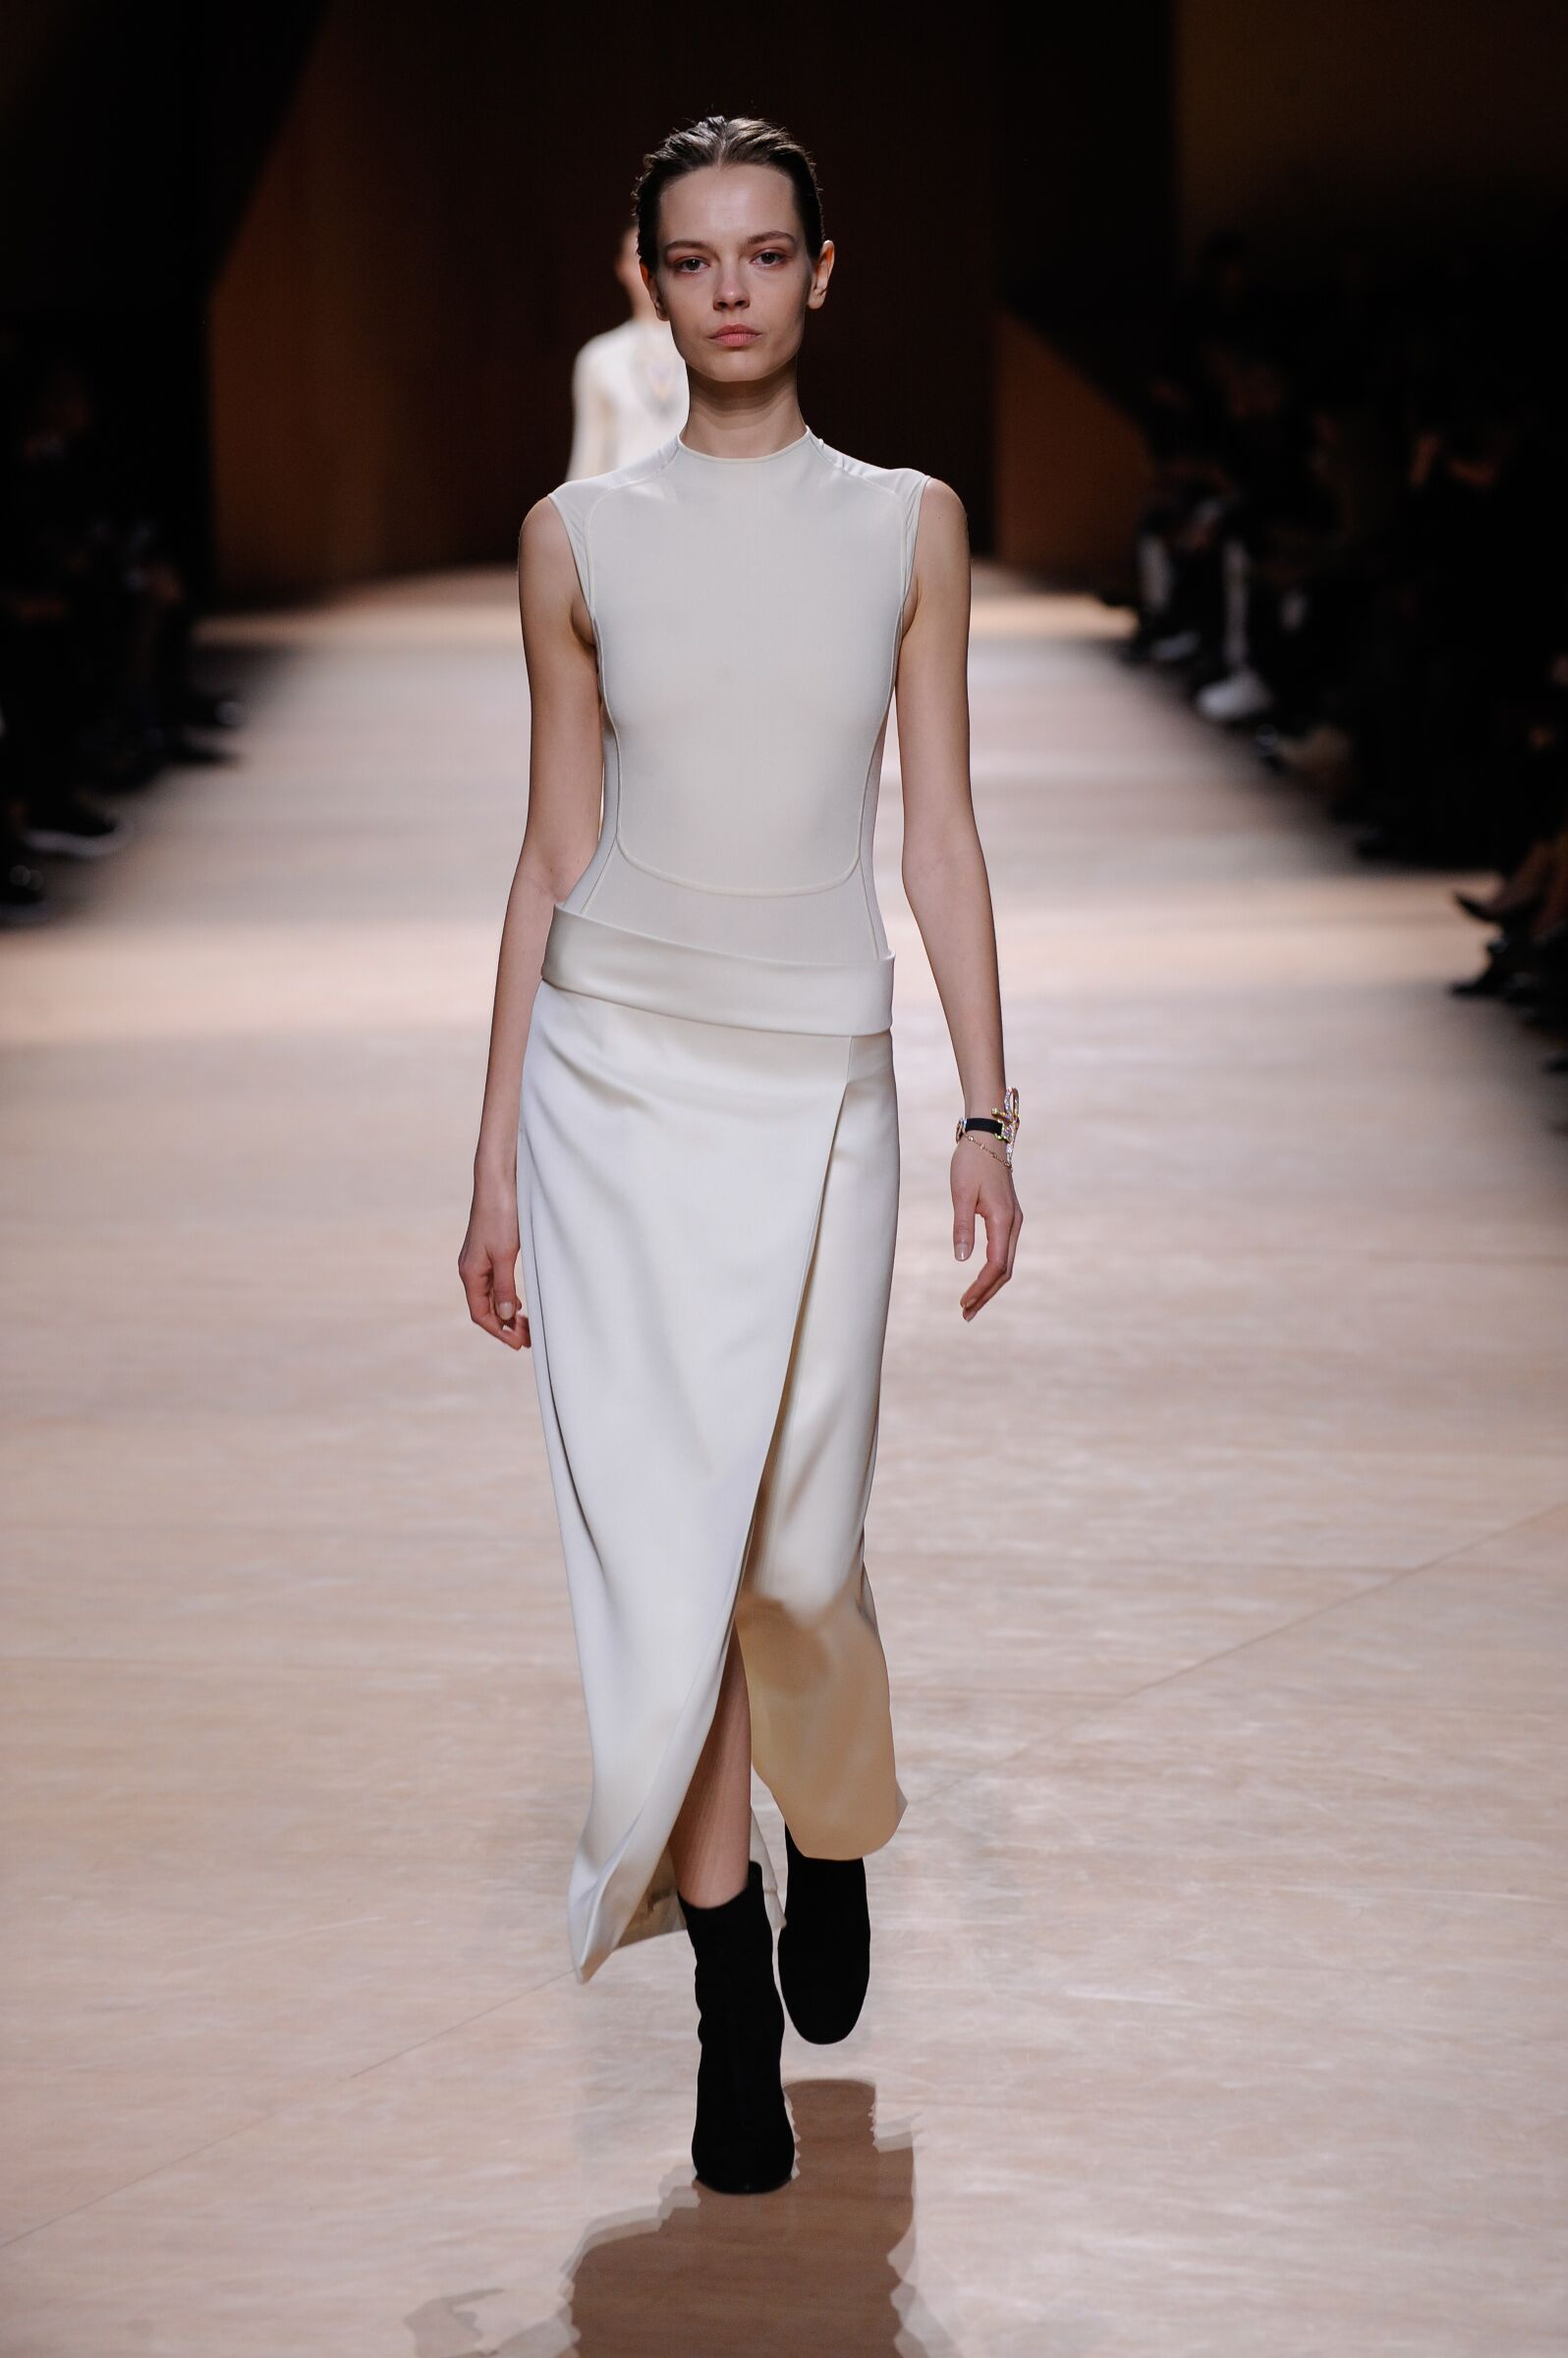 Runway Hermès Fashion Show Winter 2015